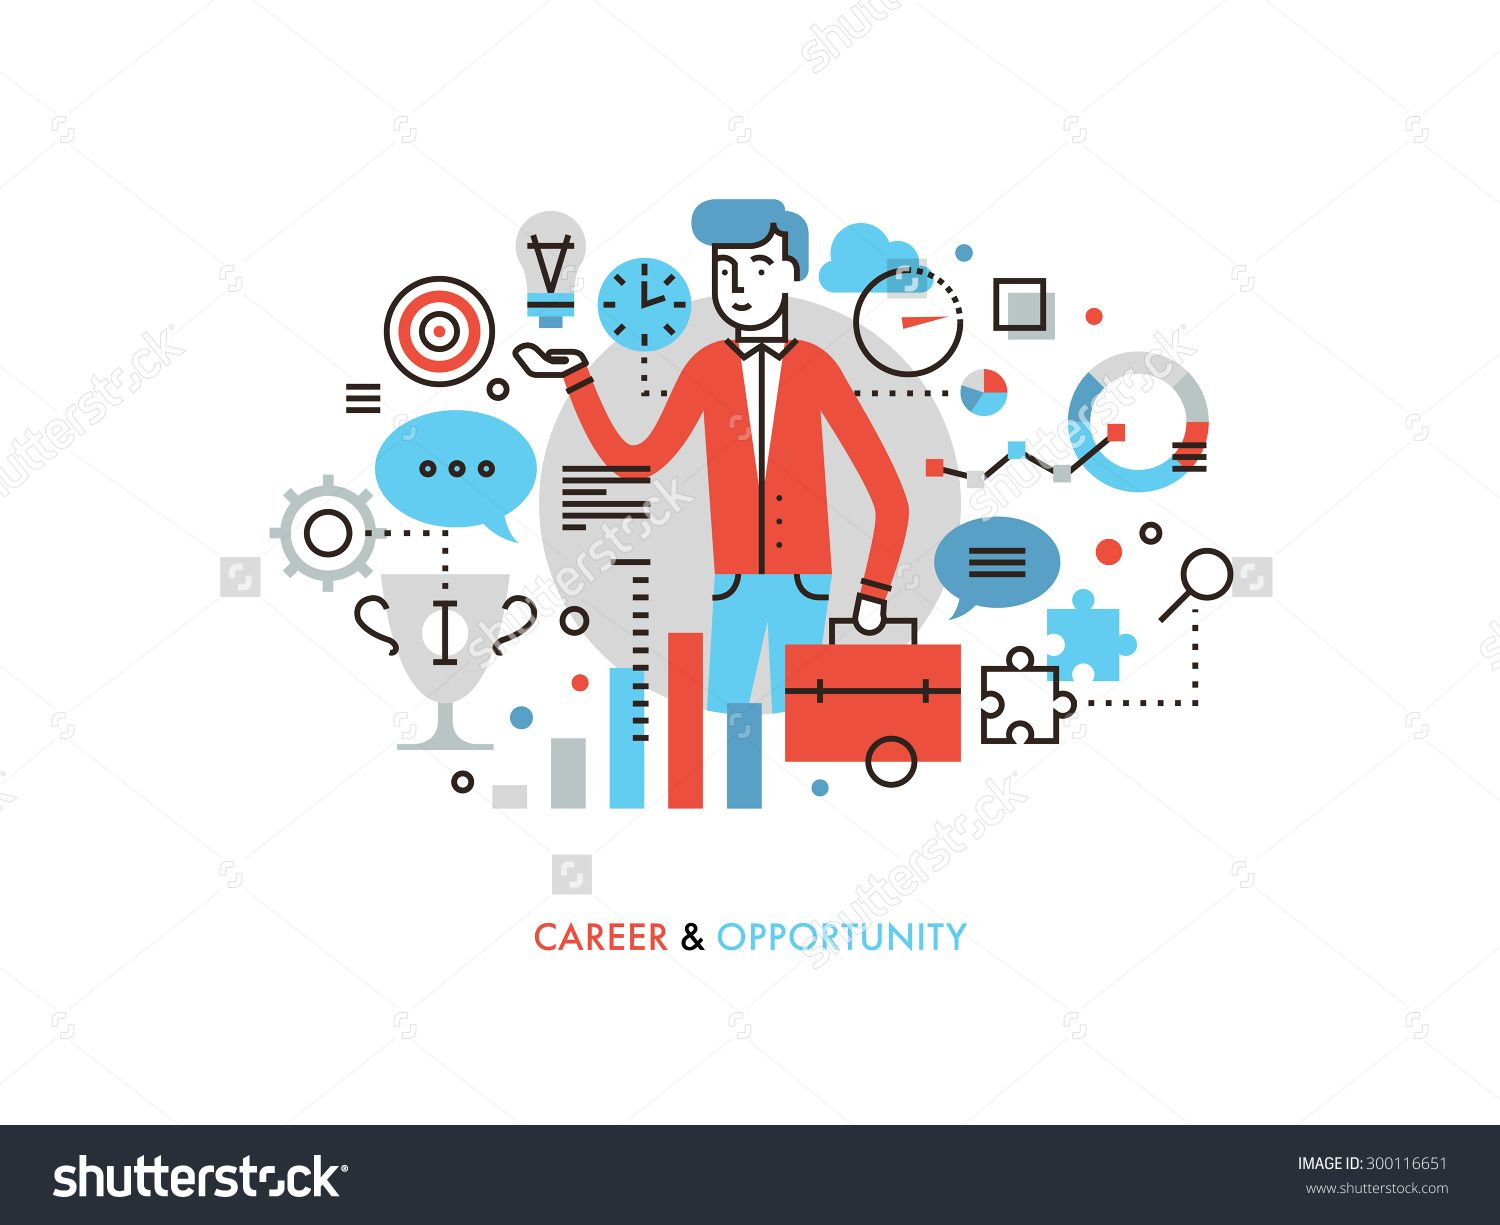 Thin line flat design of business leader with success idea, career opportunity for leadership development, marketing strategy winner. Modern vector illustration concept, isolated on white background.